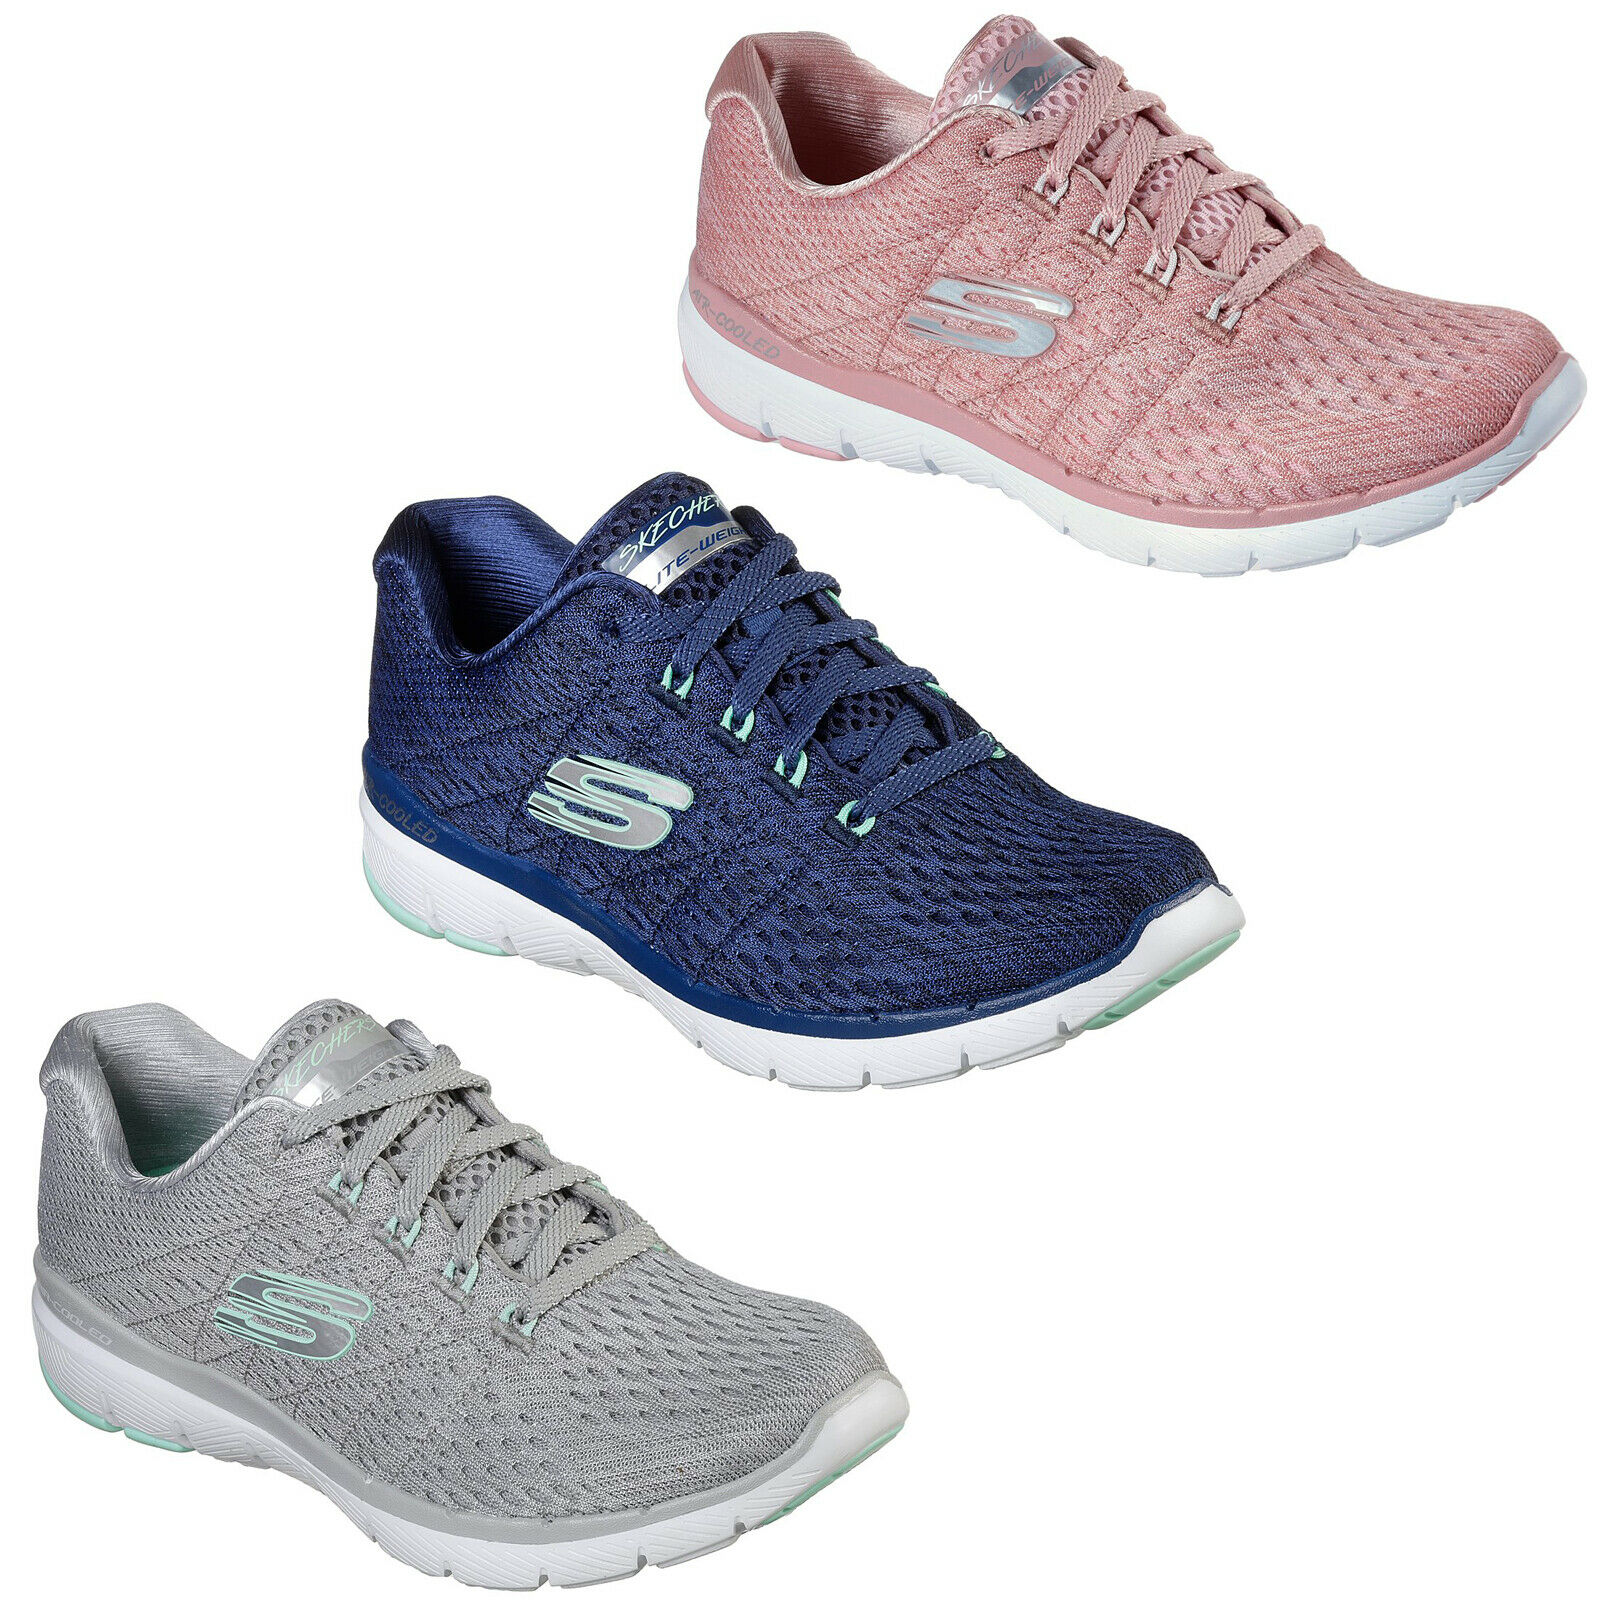 Skechers Flex Appeal 3.0 - Satellites Trainers Womens Sporty Melange shoes 13064